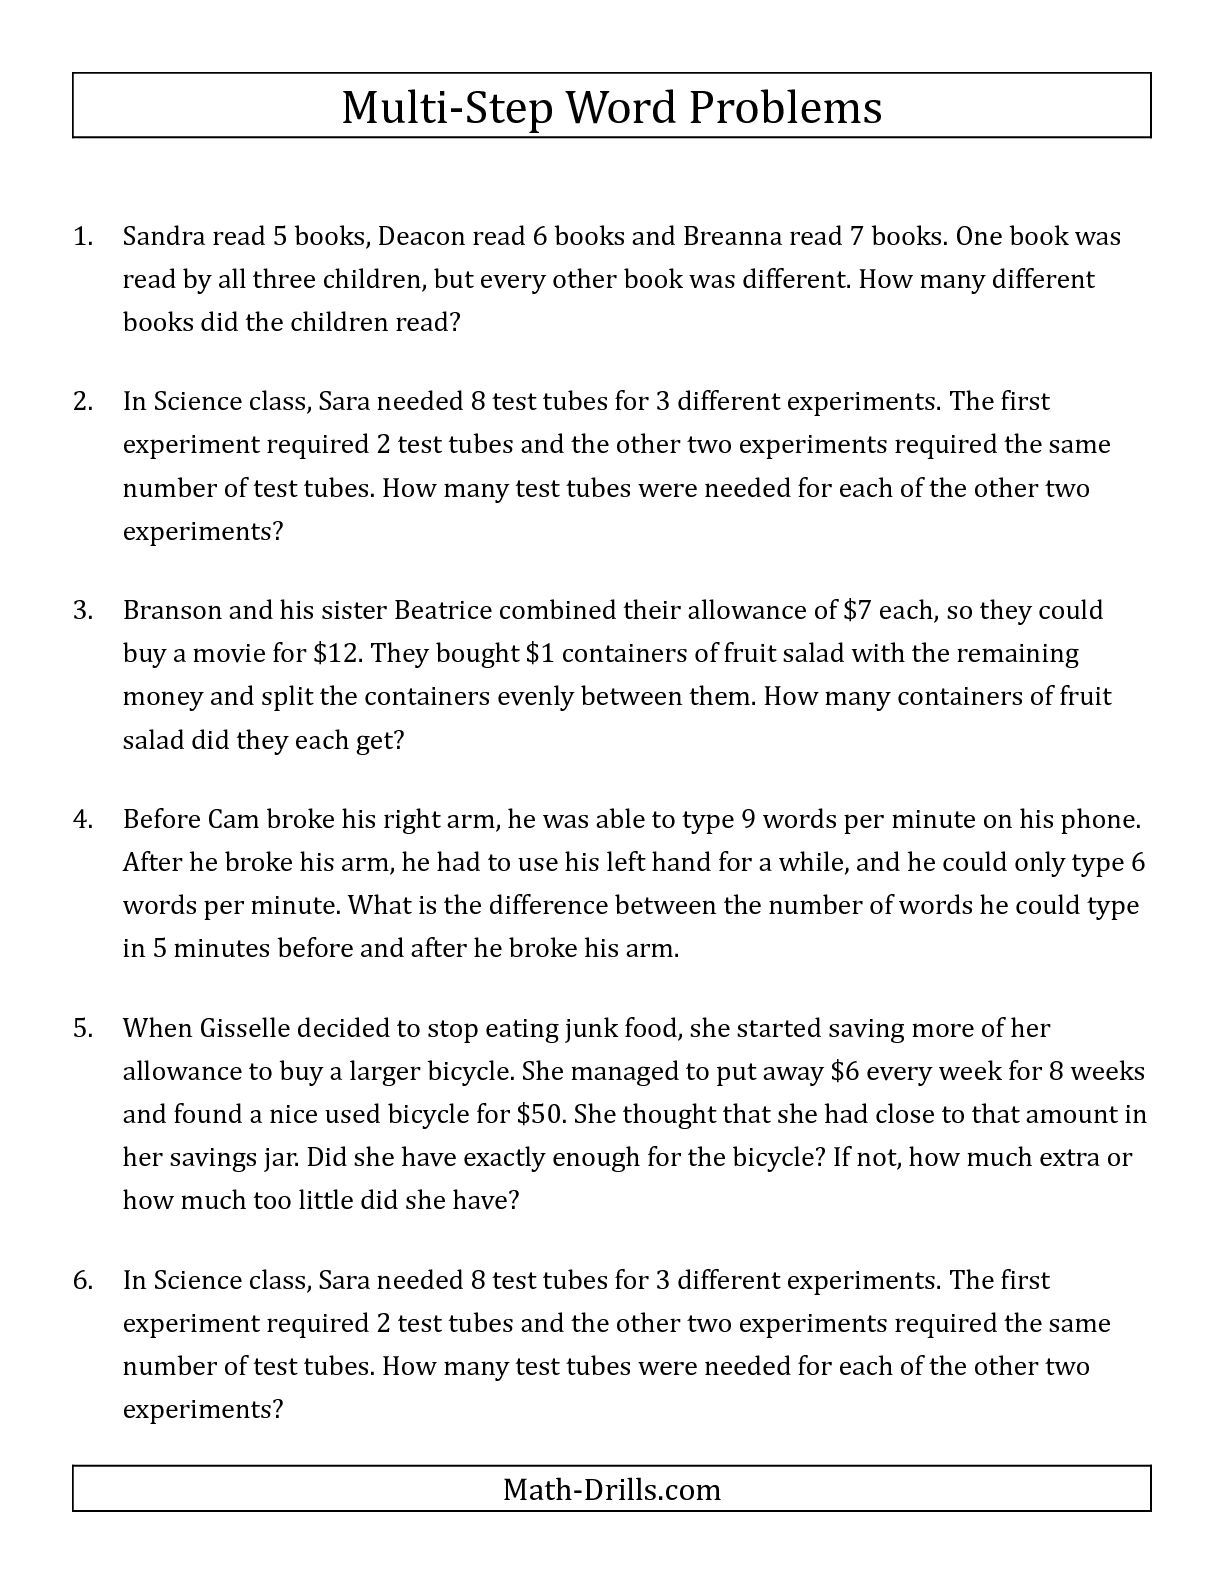 Easy Multi-Step Word Problems Word Problems Worksheet   Multi step word  problems [ 1584 x 1224 Pixel ]